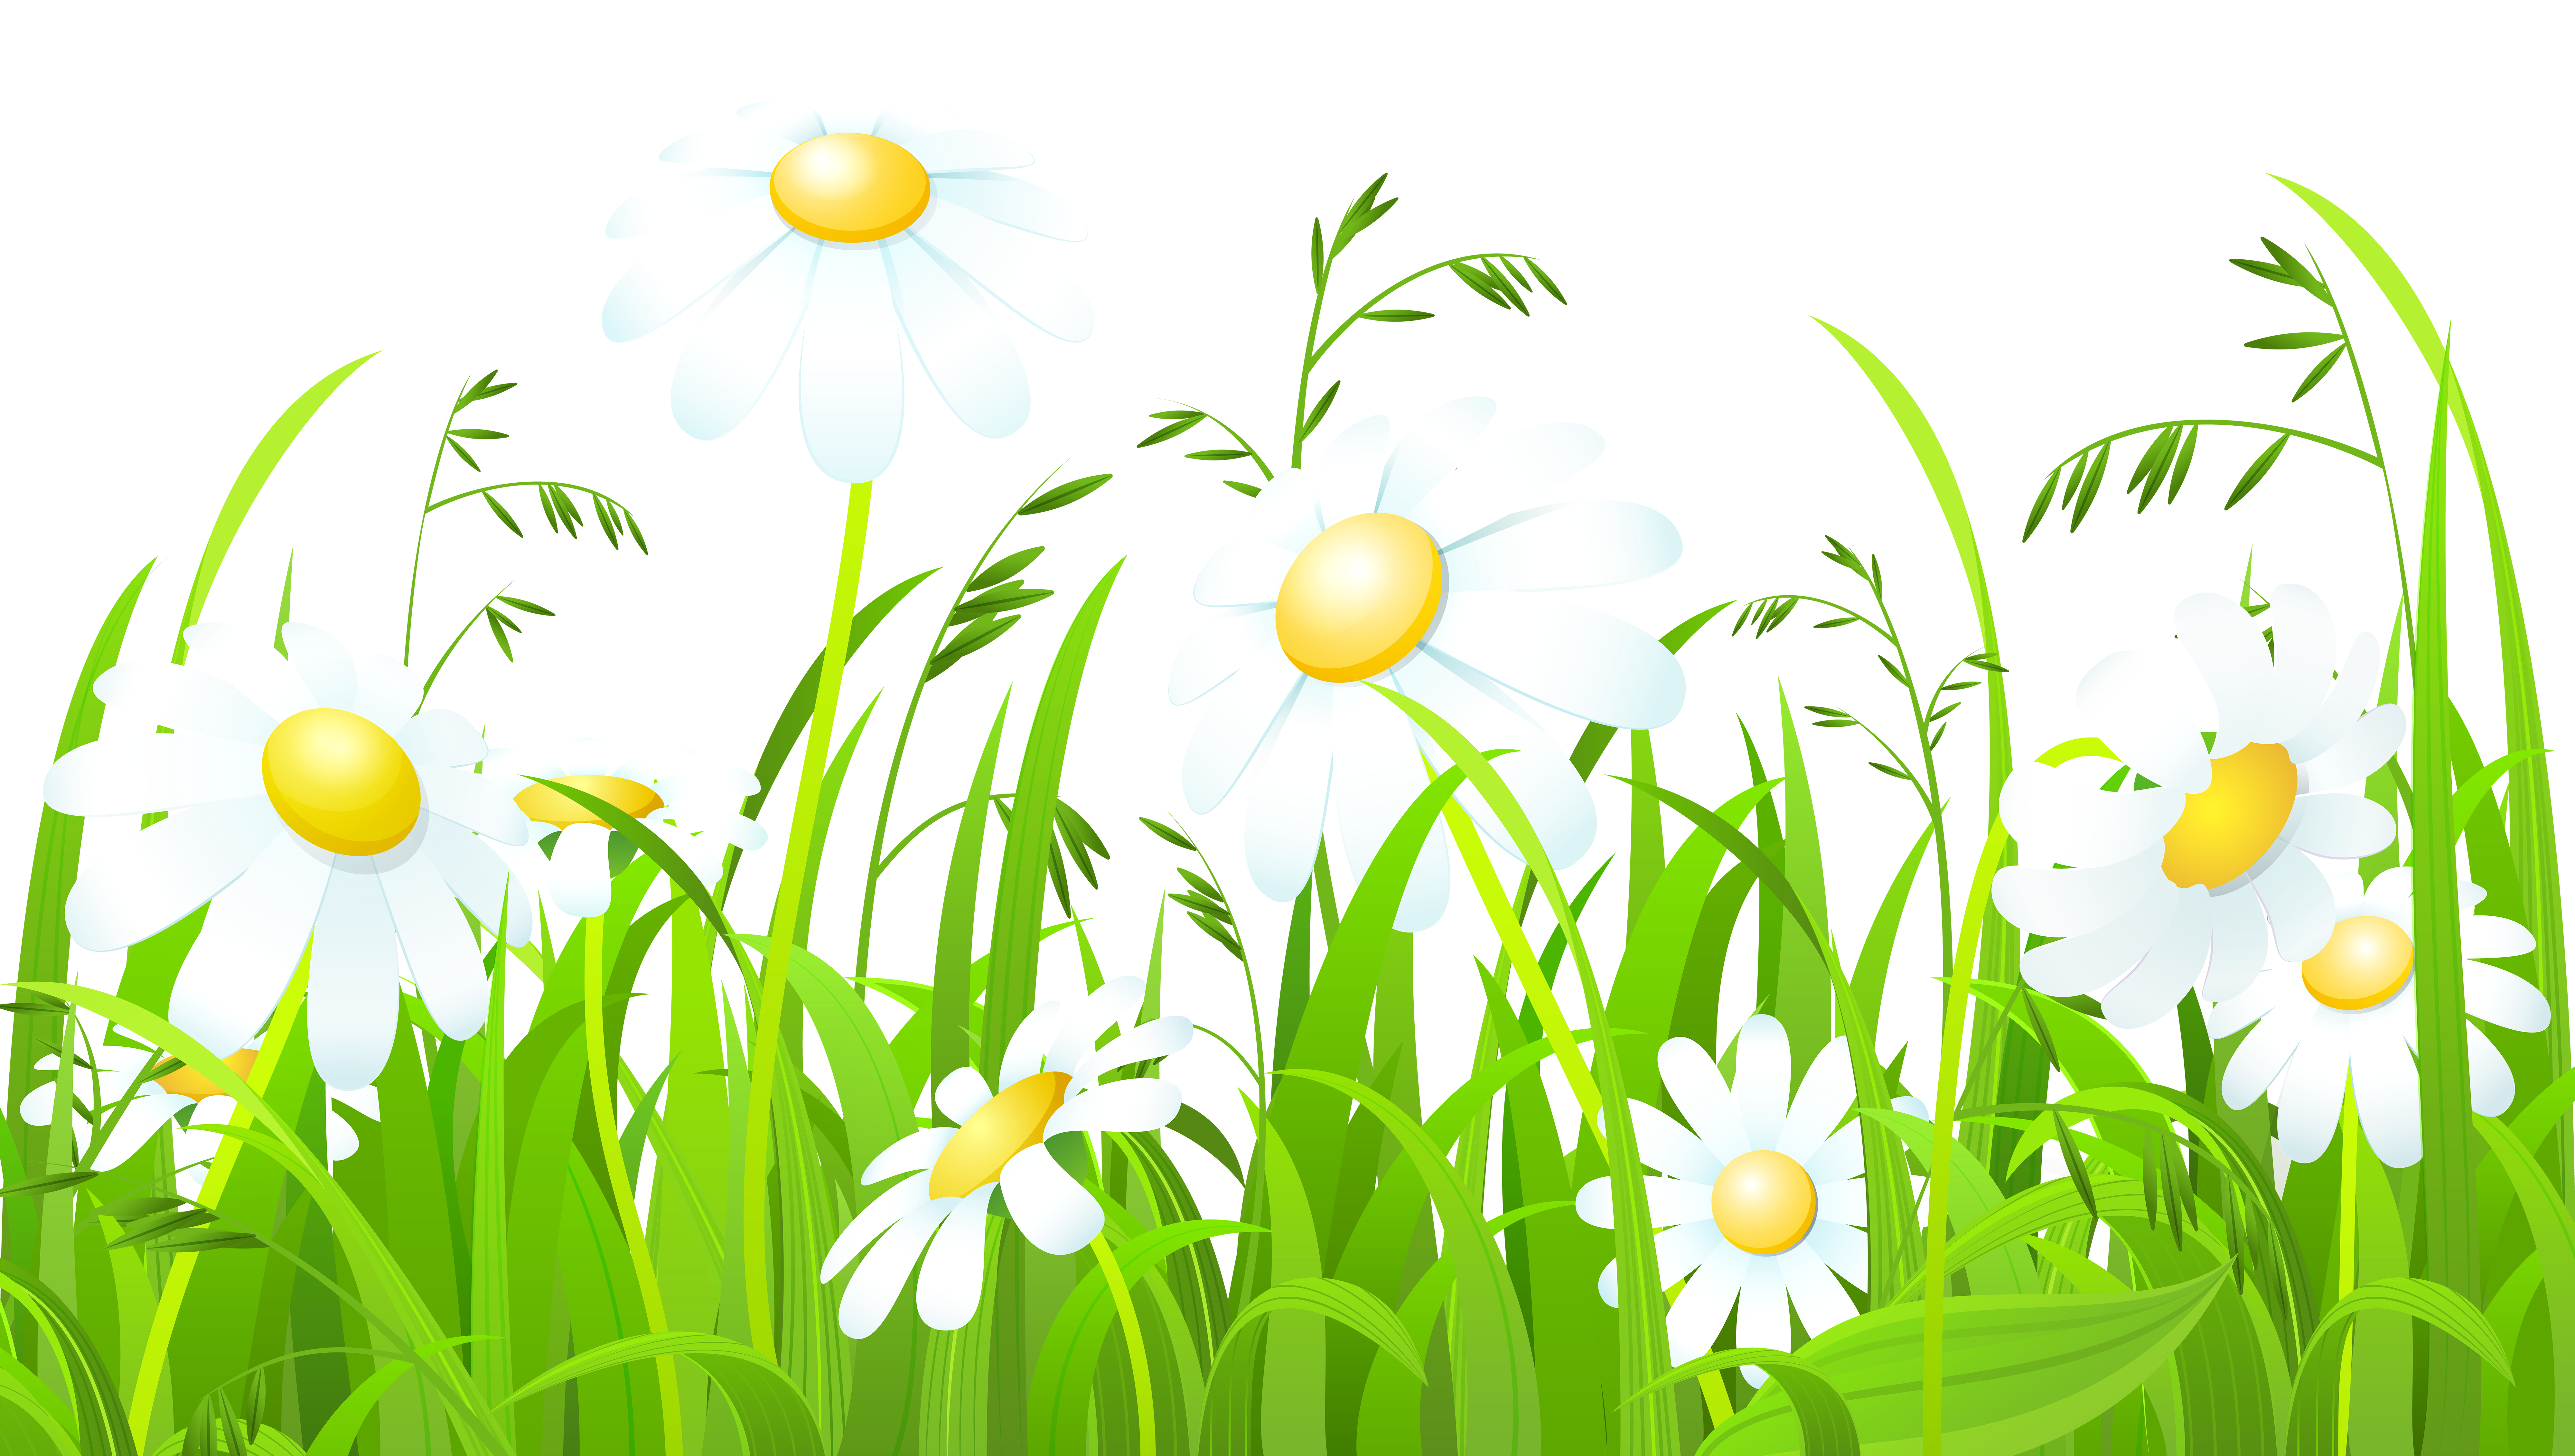 Sun and grass clipart vector royalty free White Flowers and Grass Transparent PNG Clip Art Image ... vector royalty free